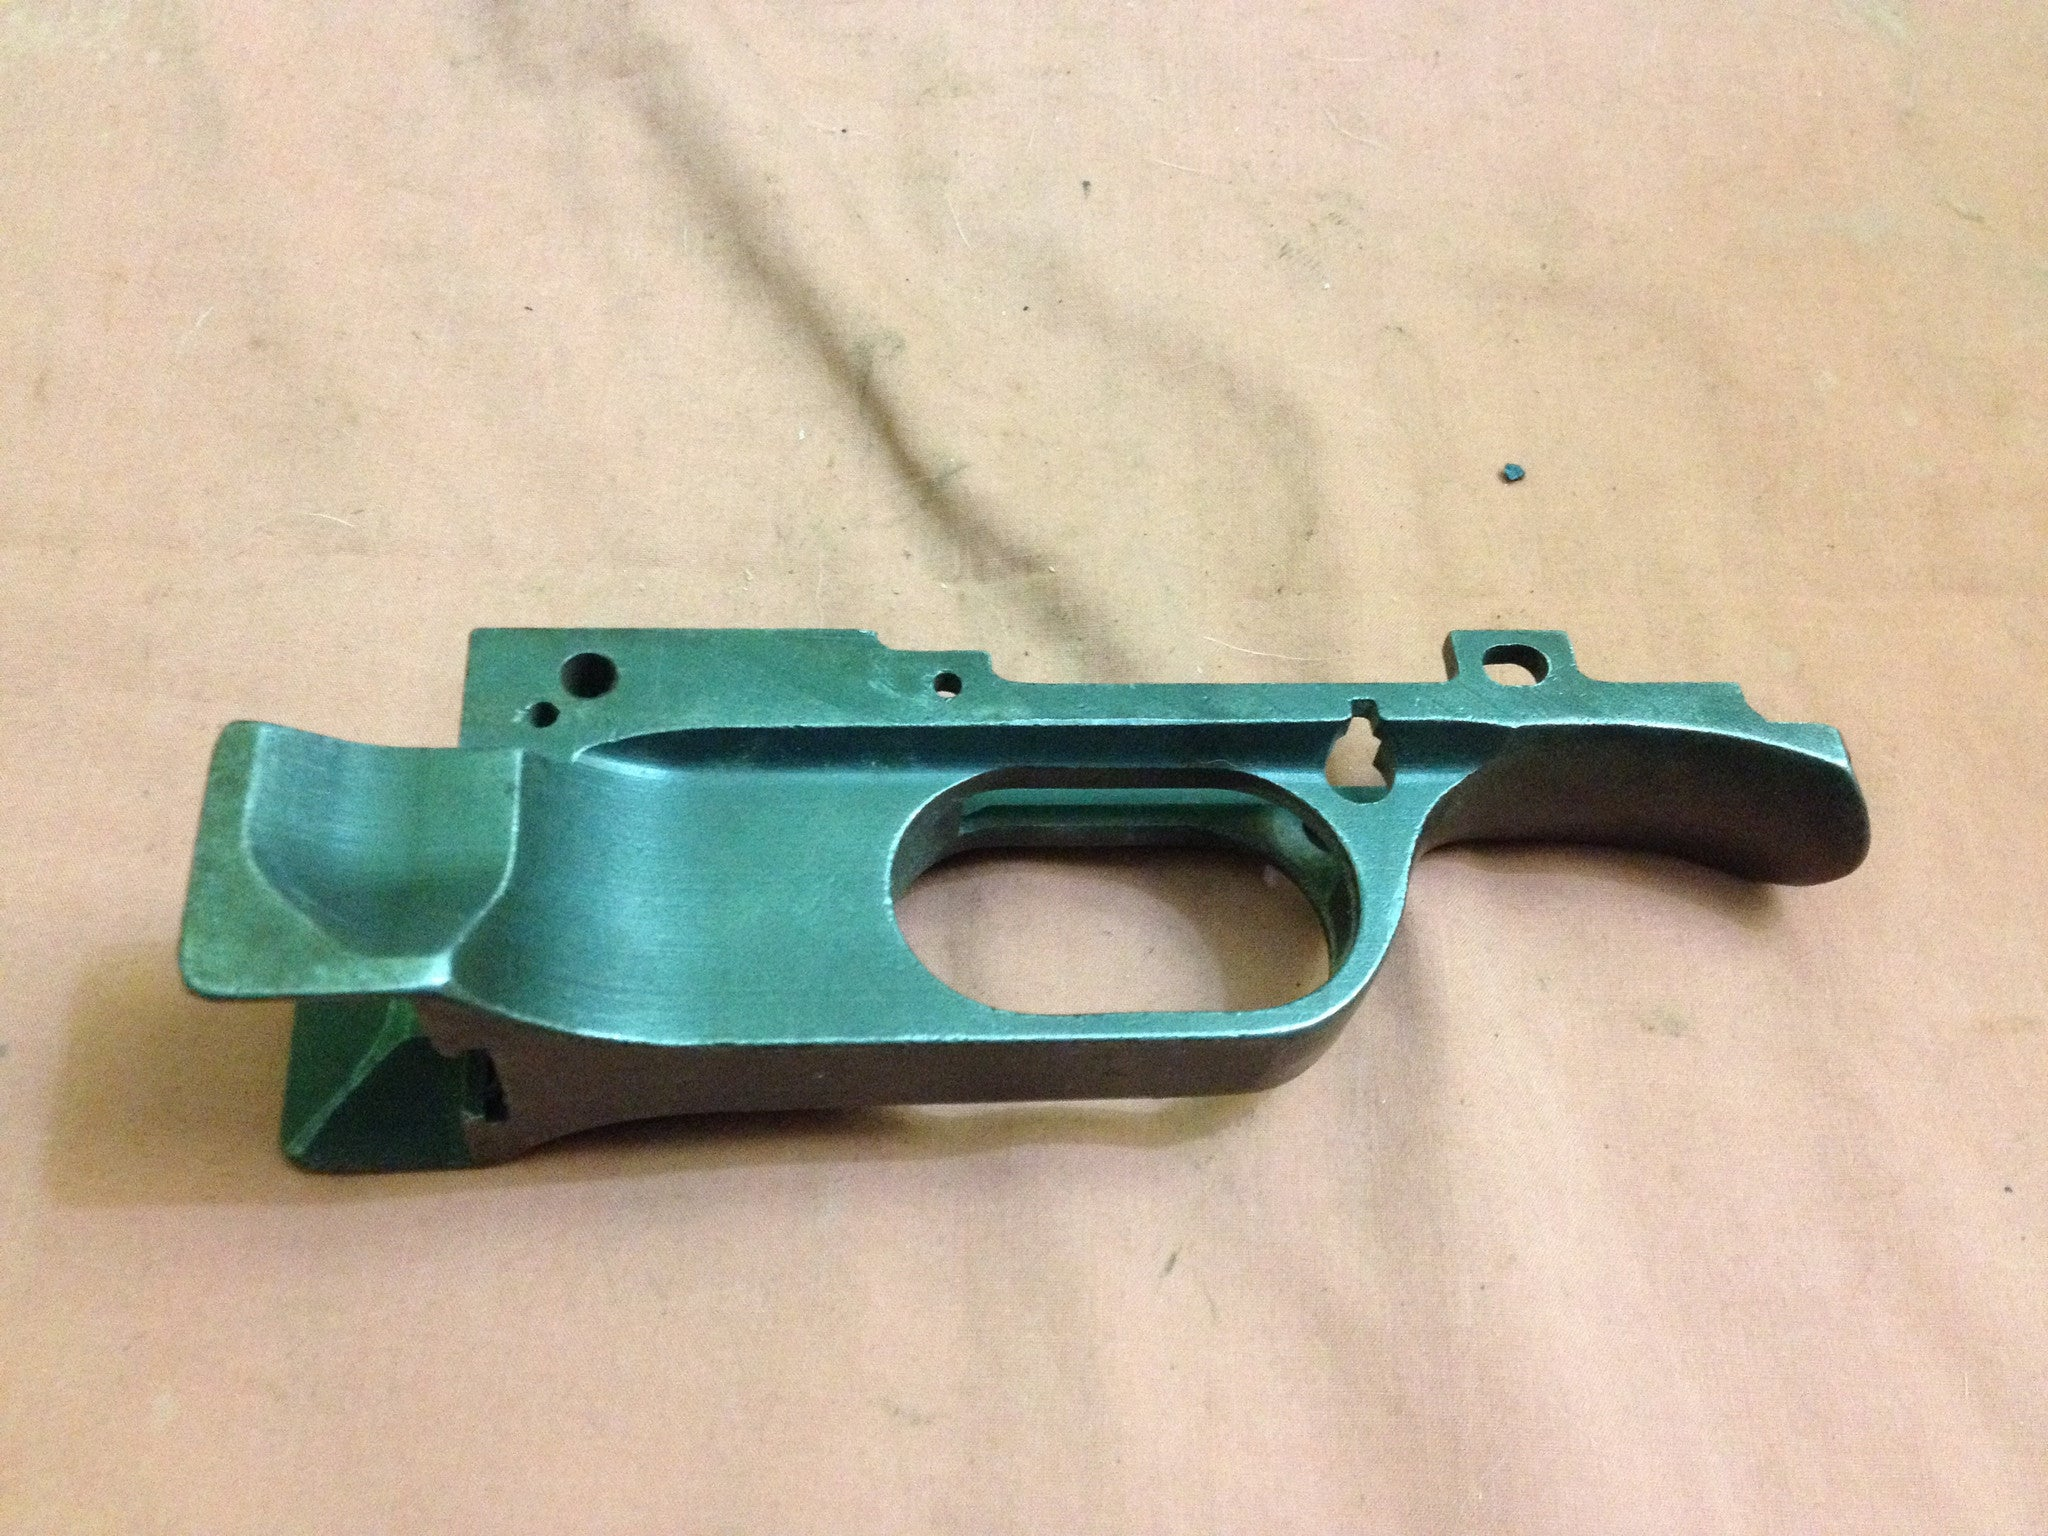 Stripped A2 trigger housing